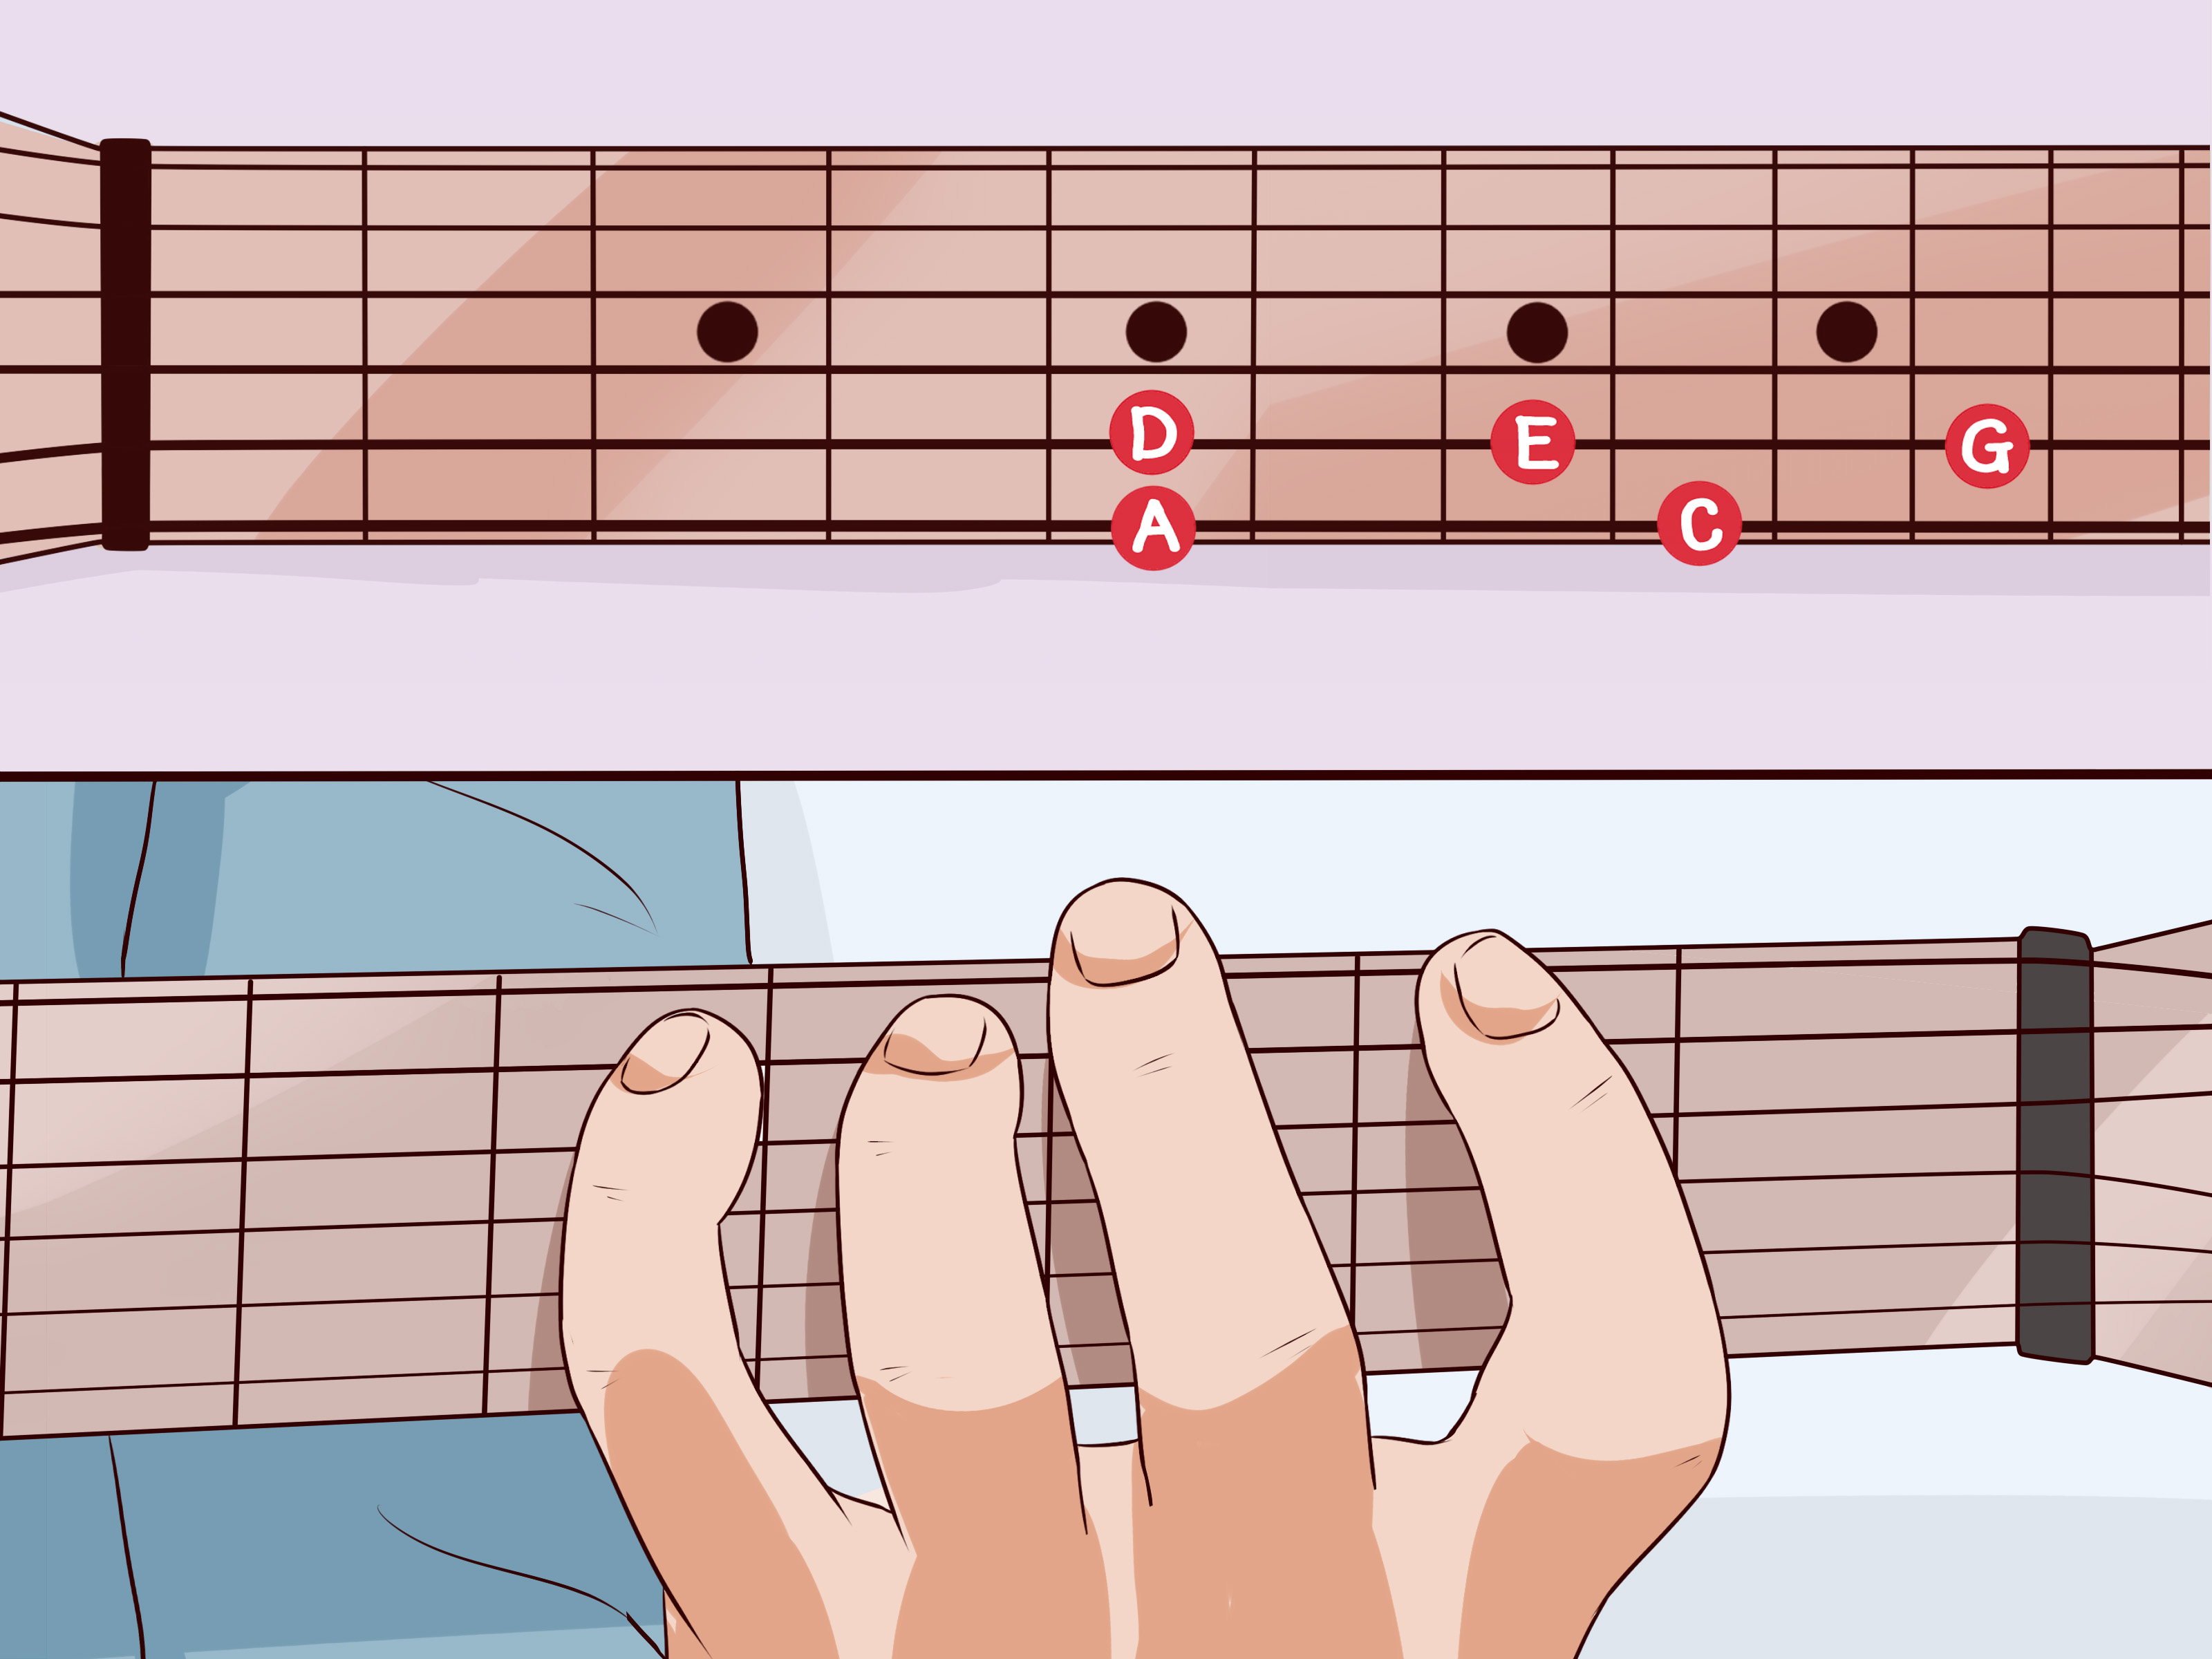 3 Ways to Solo over Chord Progressions - wikiHow